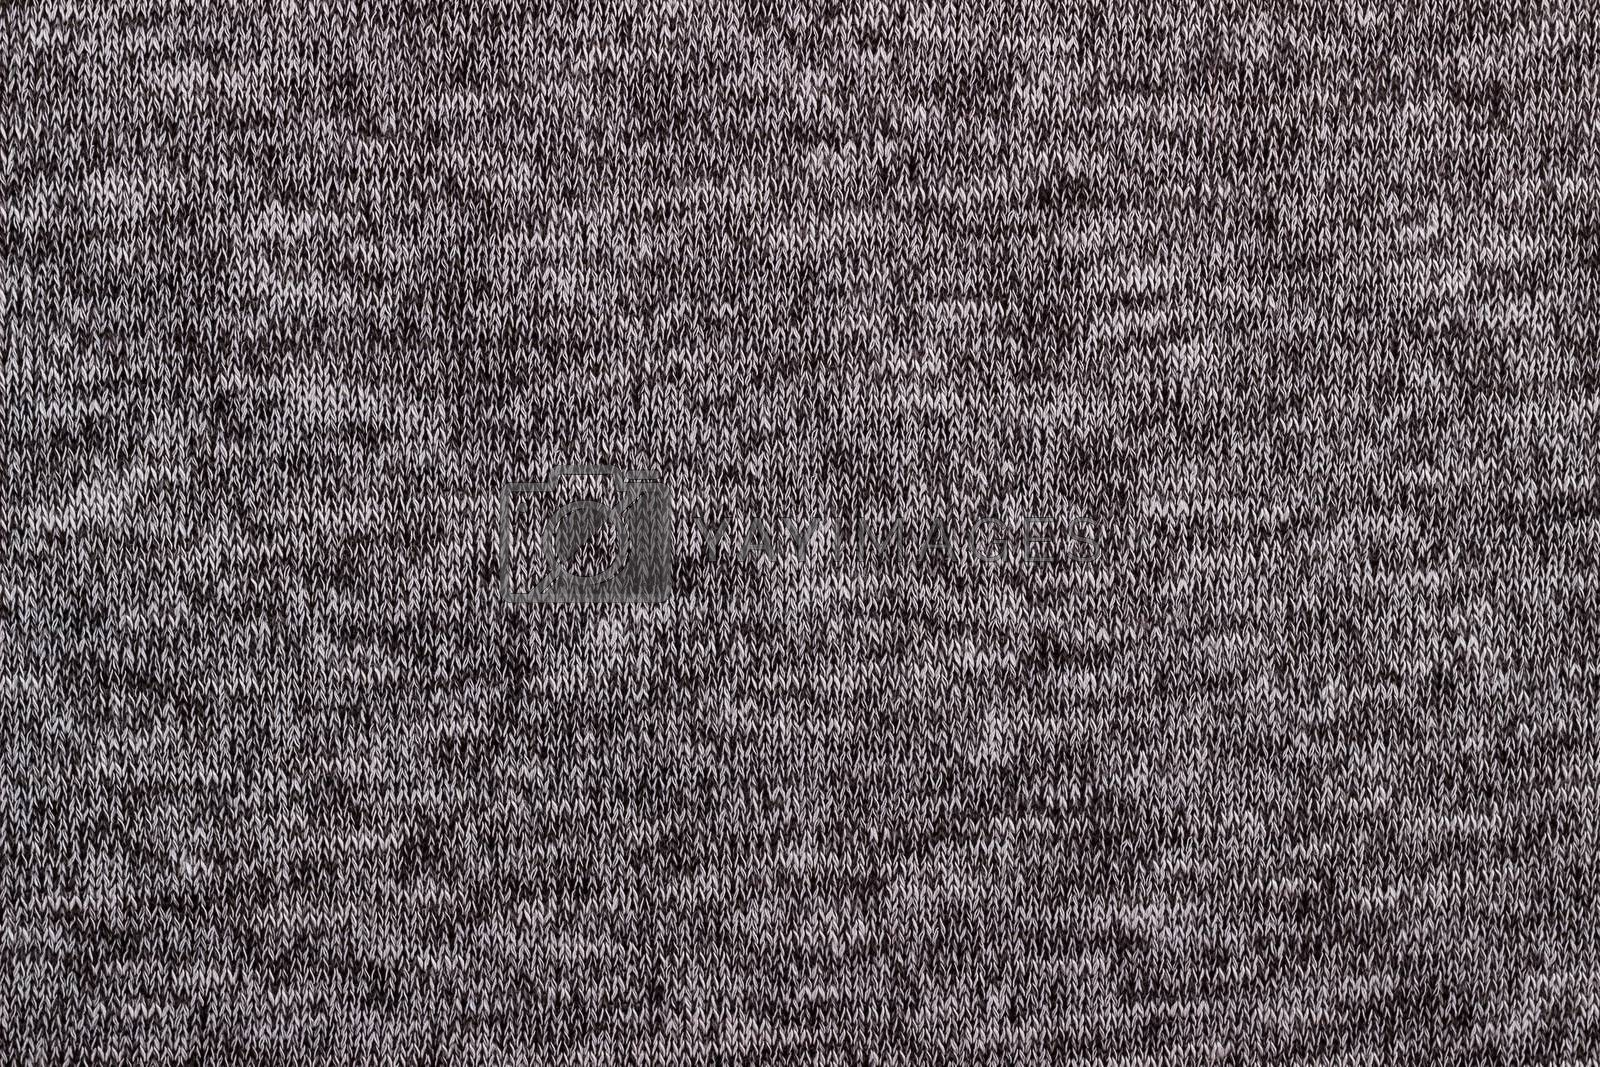 Texture of gray knitted woolen fabric for wallpaper and an abstract background